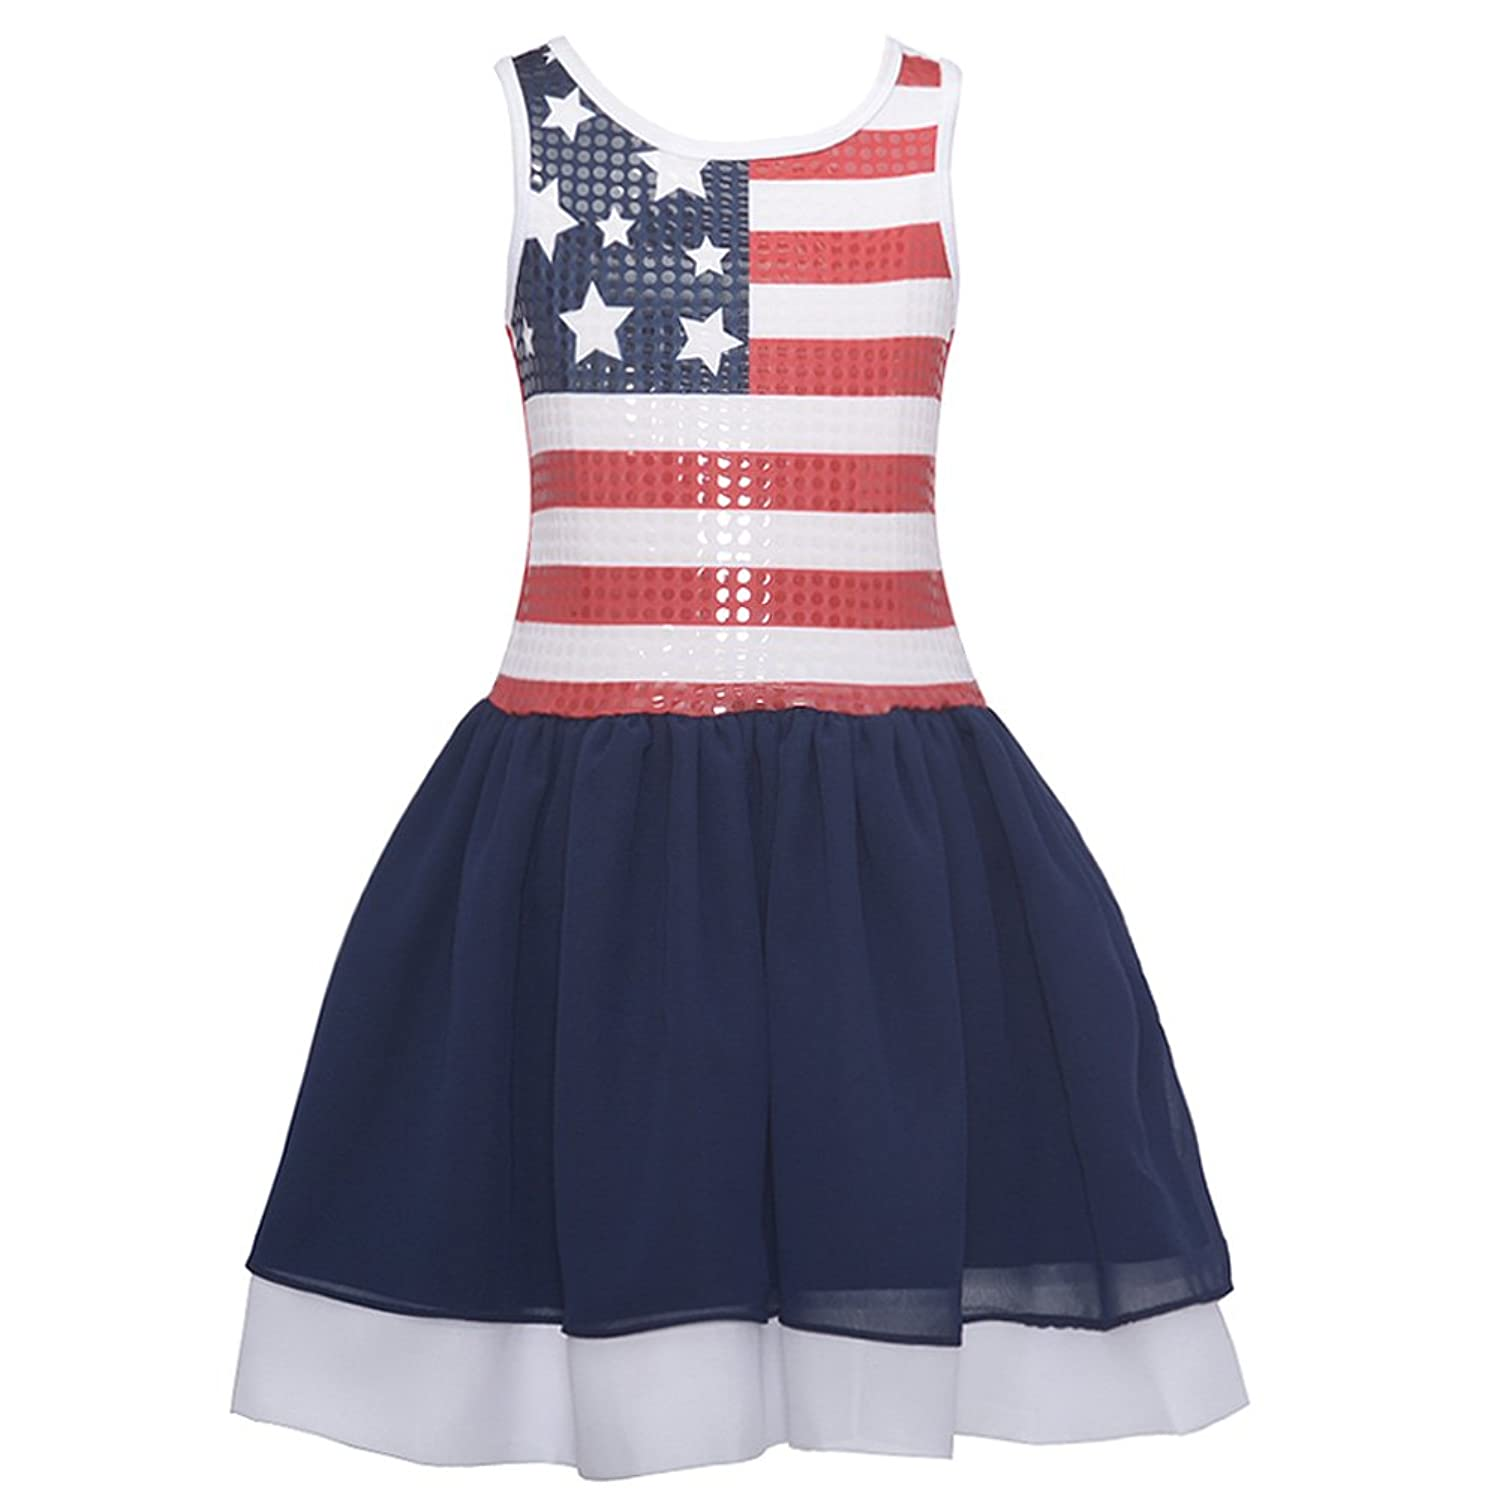 Red, White, and Blue Summer janydo.ml many of us are celebrating the our nation's independence today, I though I'd share some red, white and blue dresses that you can wear all summer long.